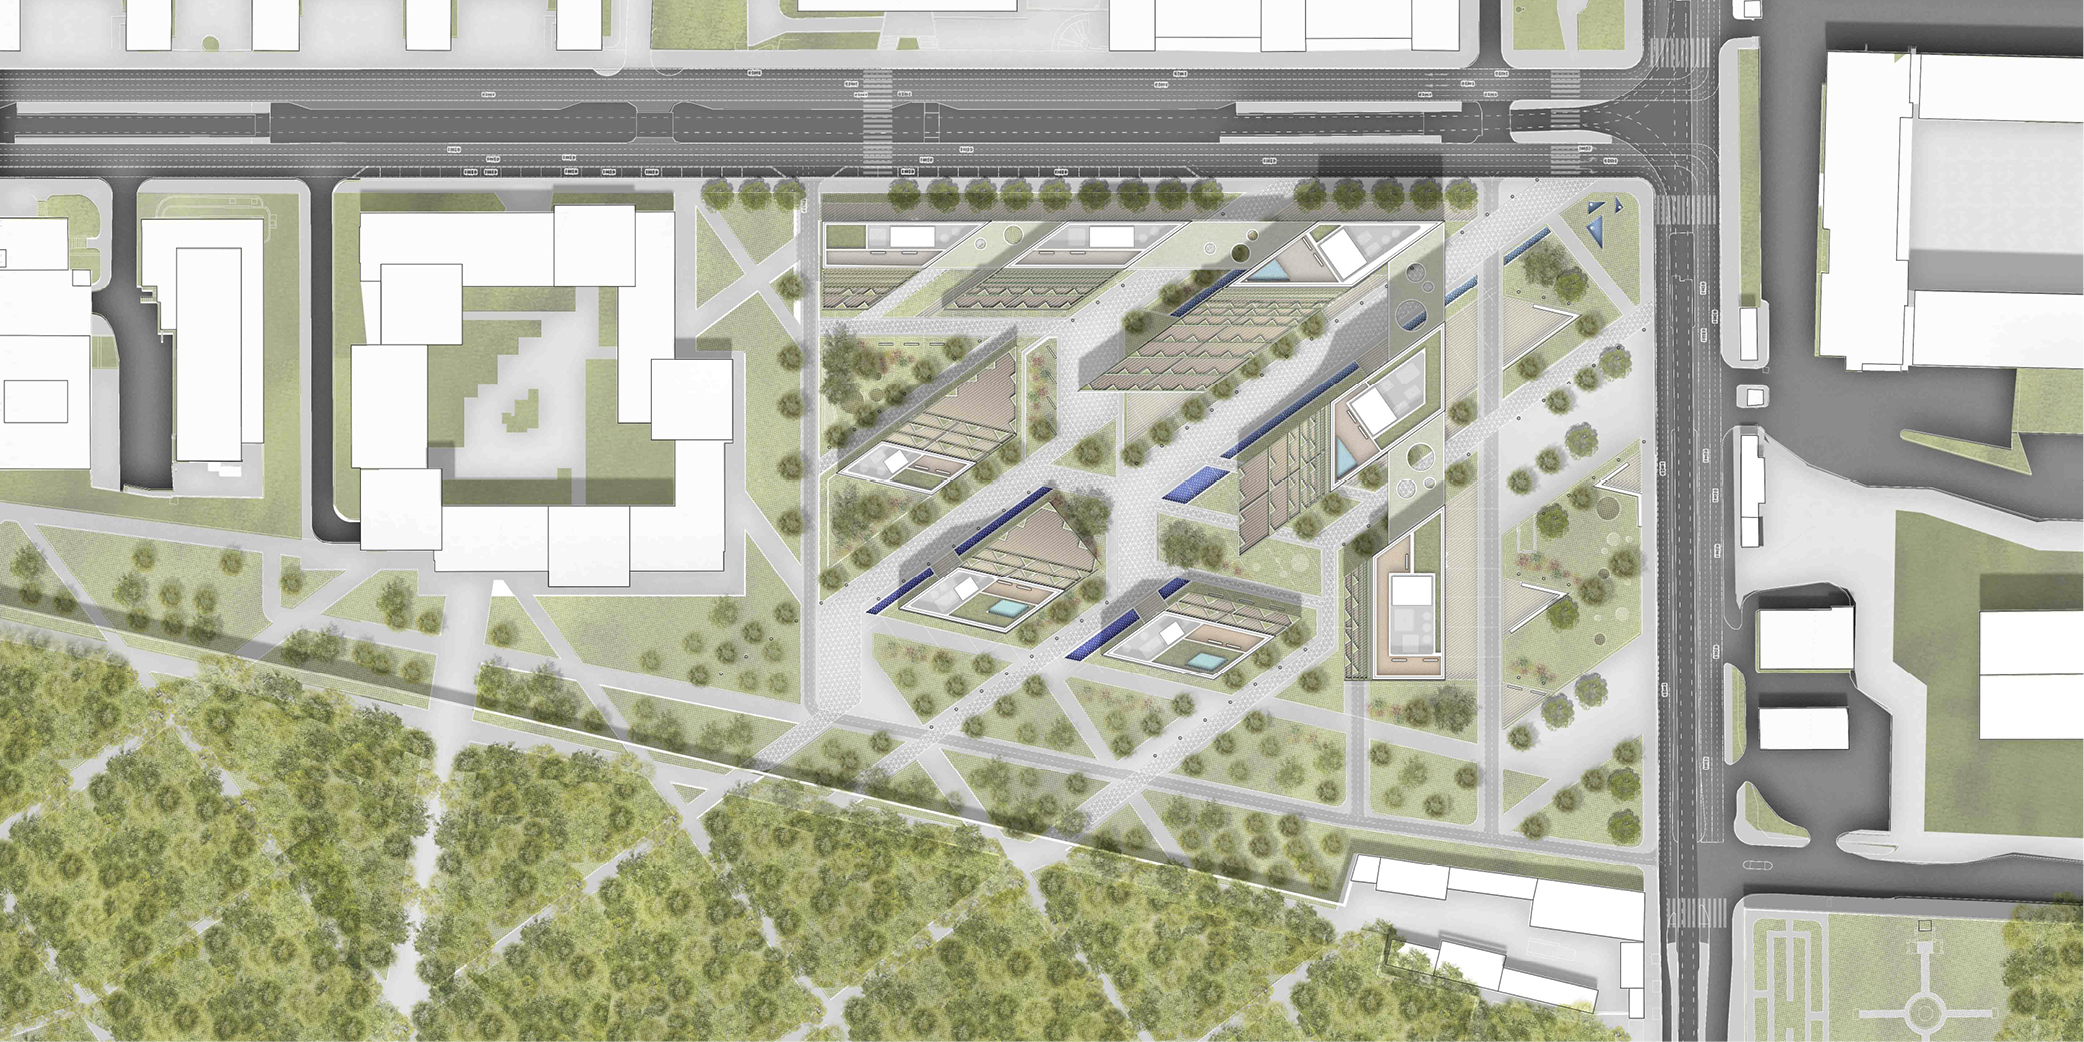 Wider realtions, roof tops plan